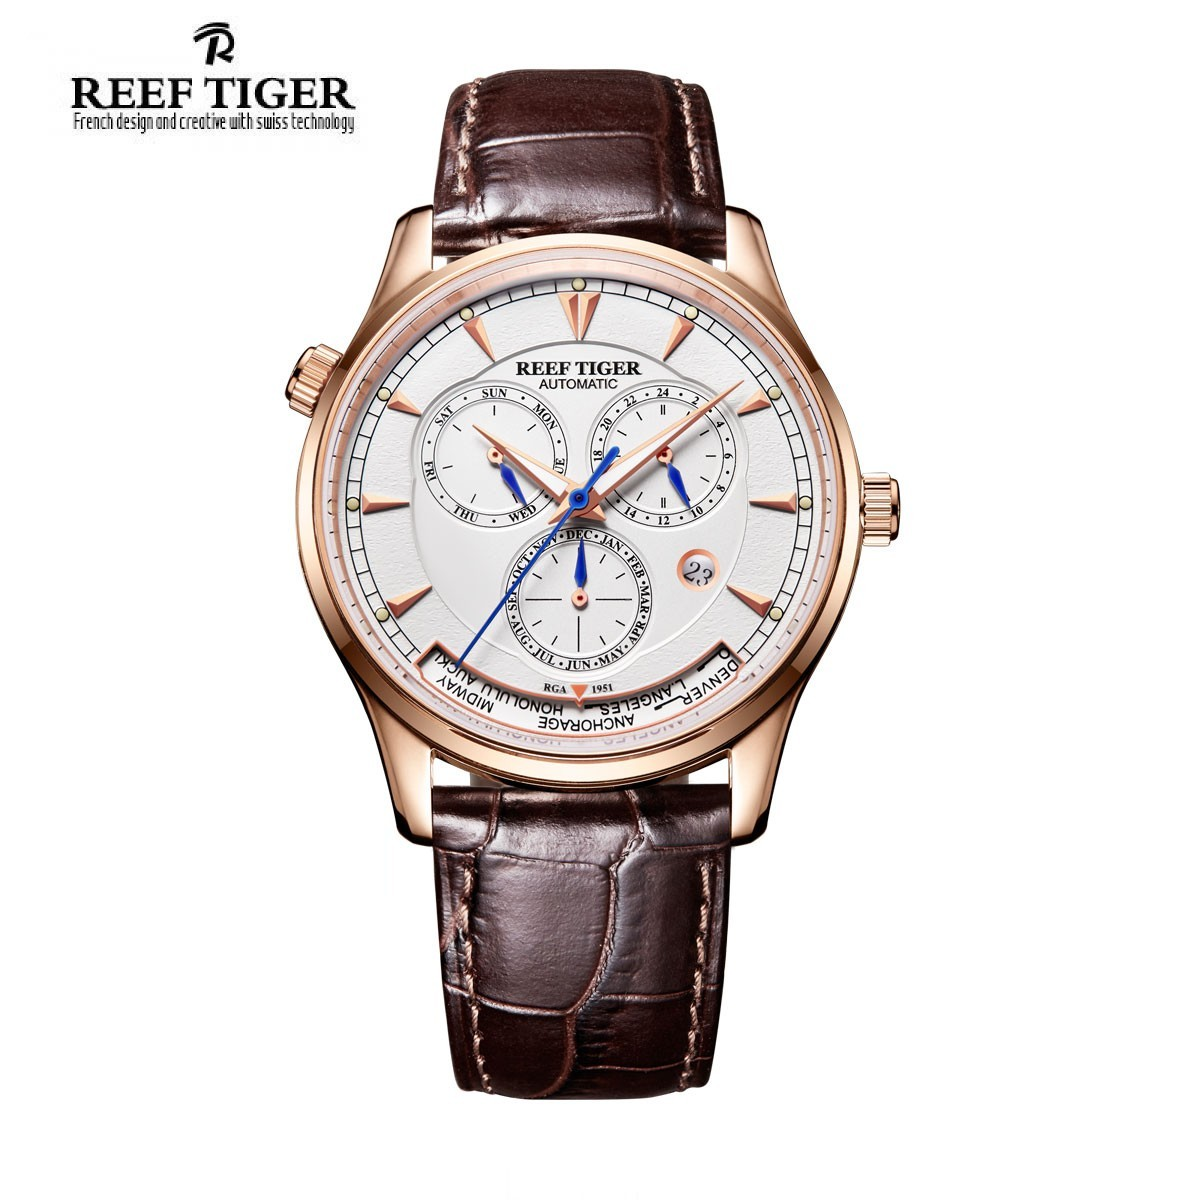 Artist Geographer World Time 41mm Rose Gold RGA1951-PWB